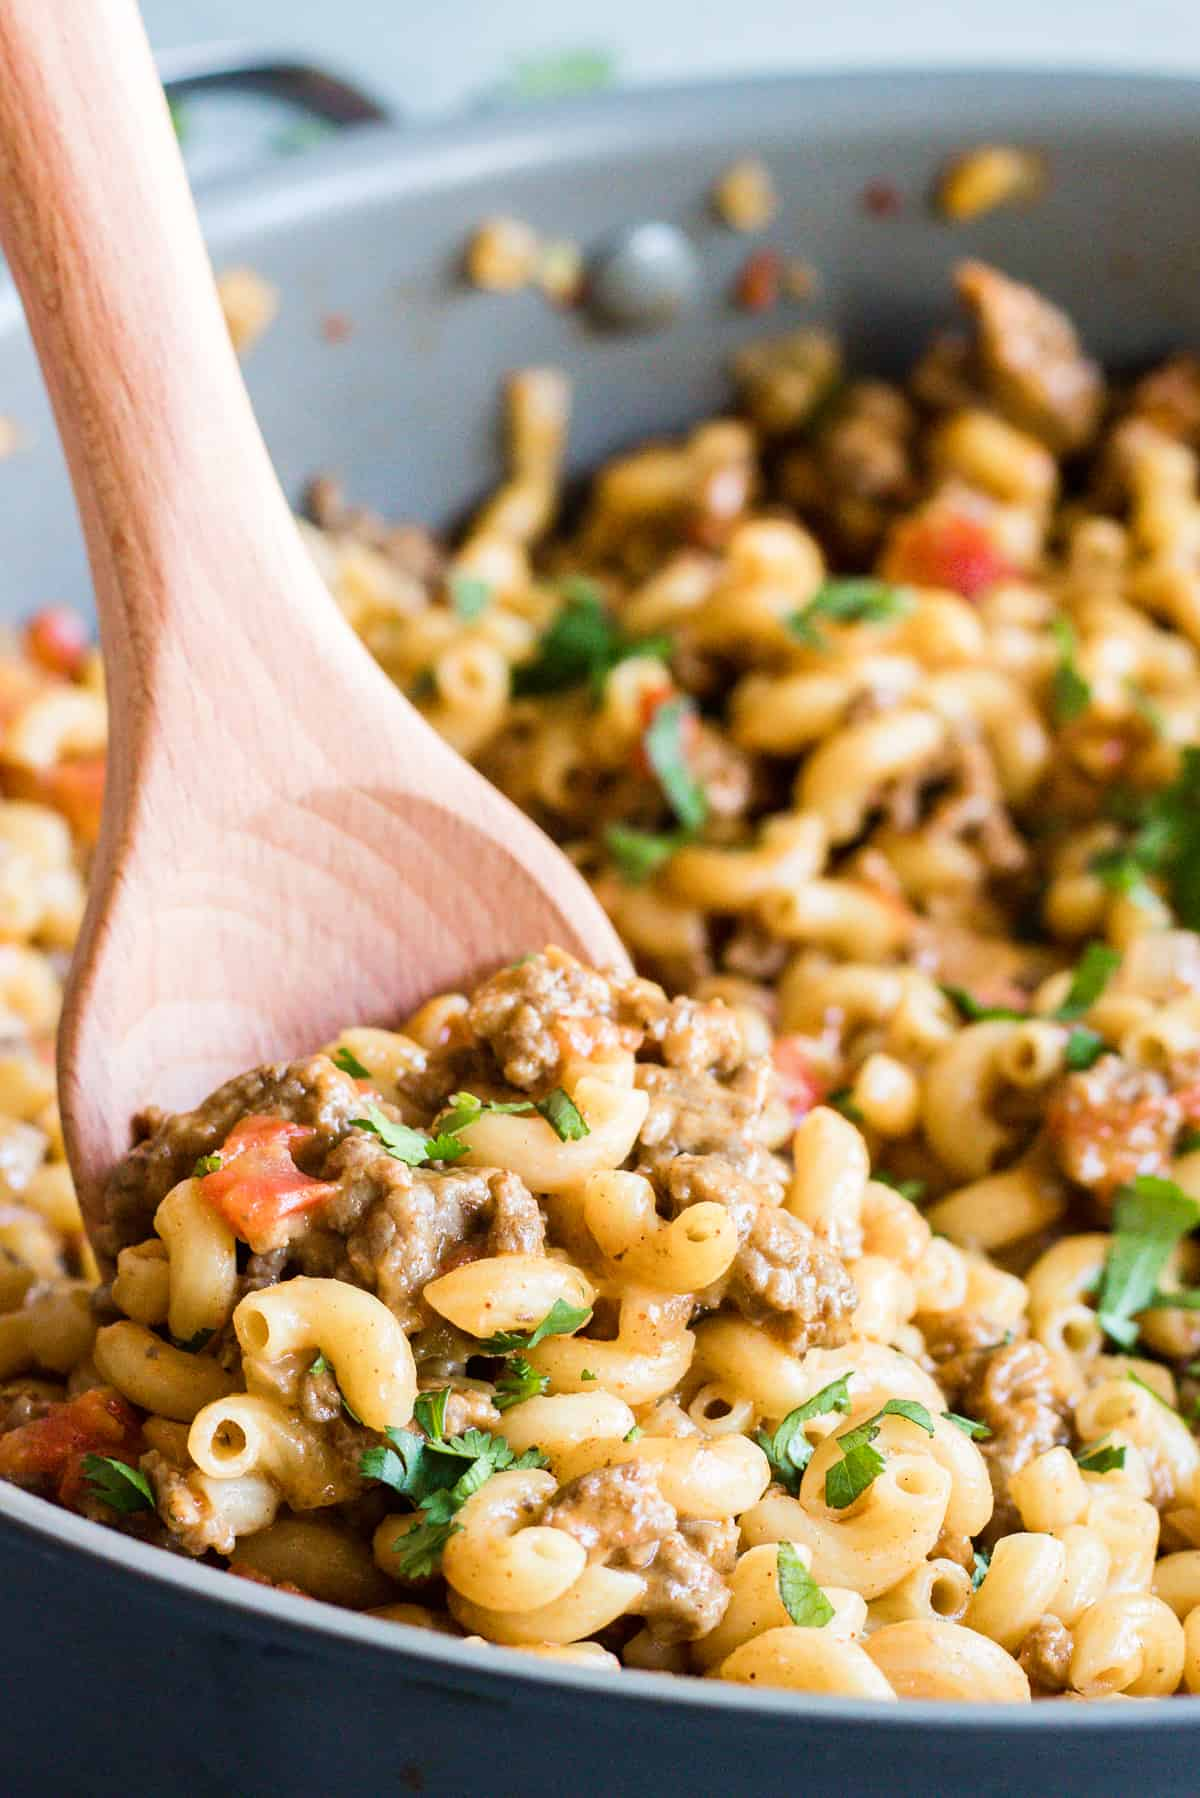 Wooden spoon scooping up cheesy one pot taco pasta, loaded with beef and tomatoes. Sprinkled with cilantro.